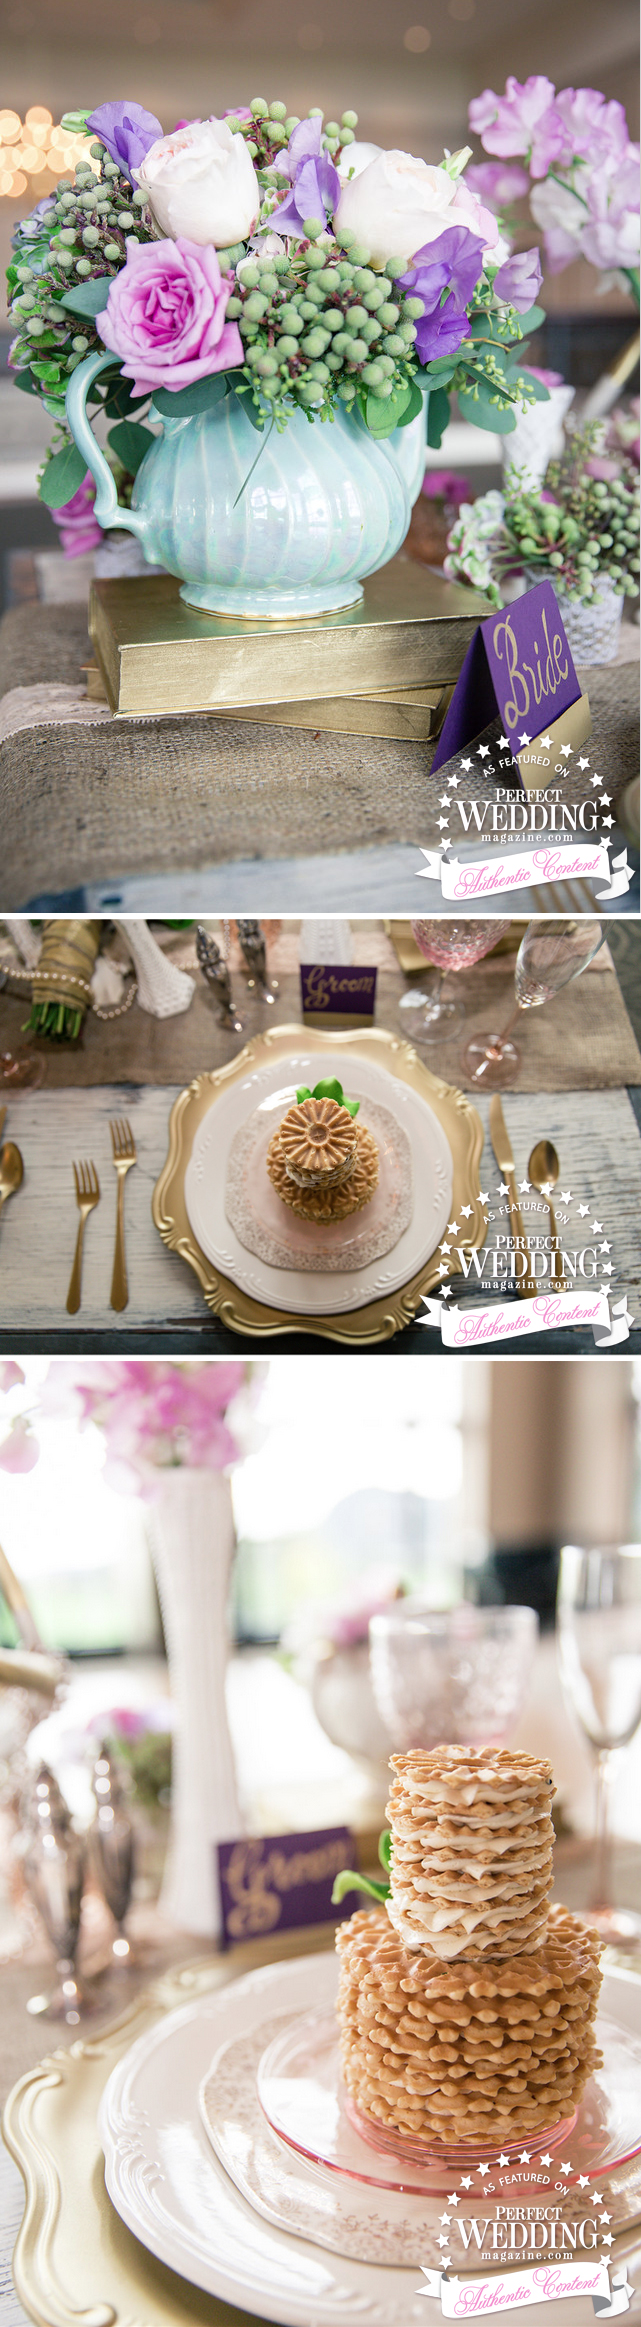 SPRING STYLE, Spring Wedding, Spring Wedding Decor, Flowers, Fashion Bridal, Perfect Wedding Magazine